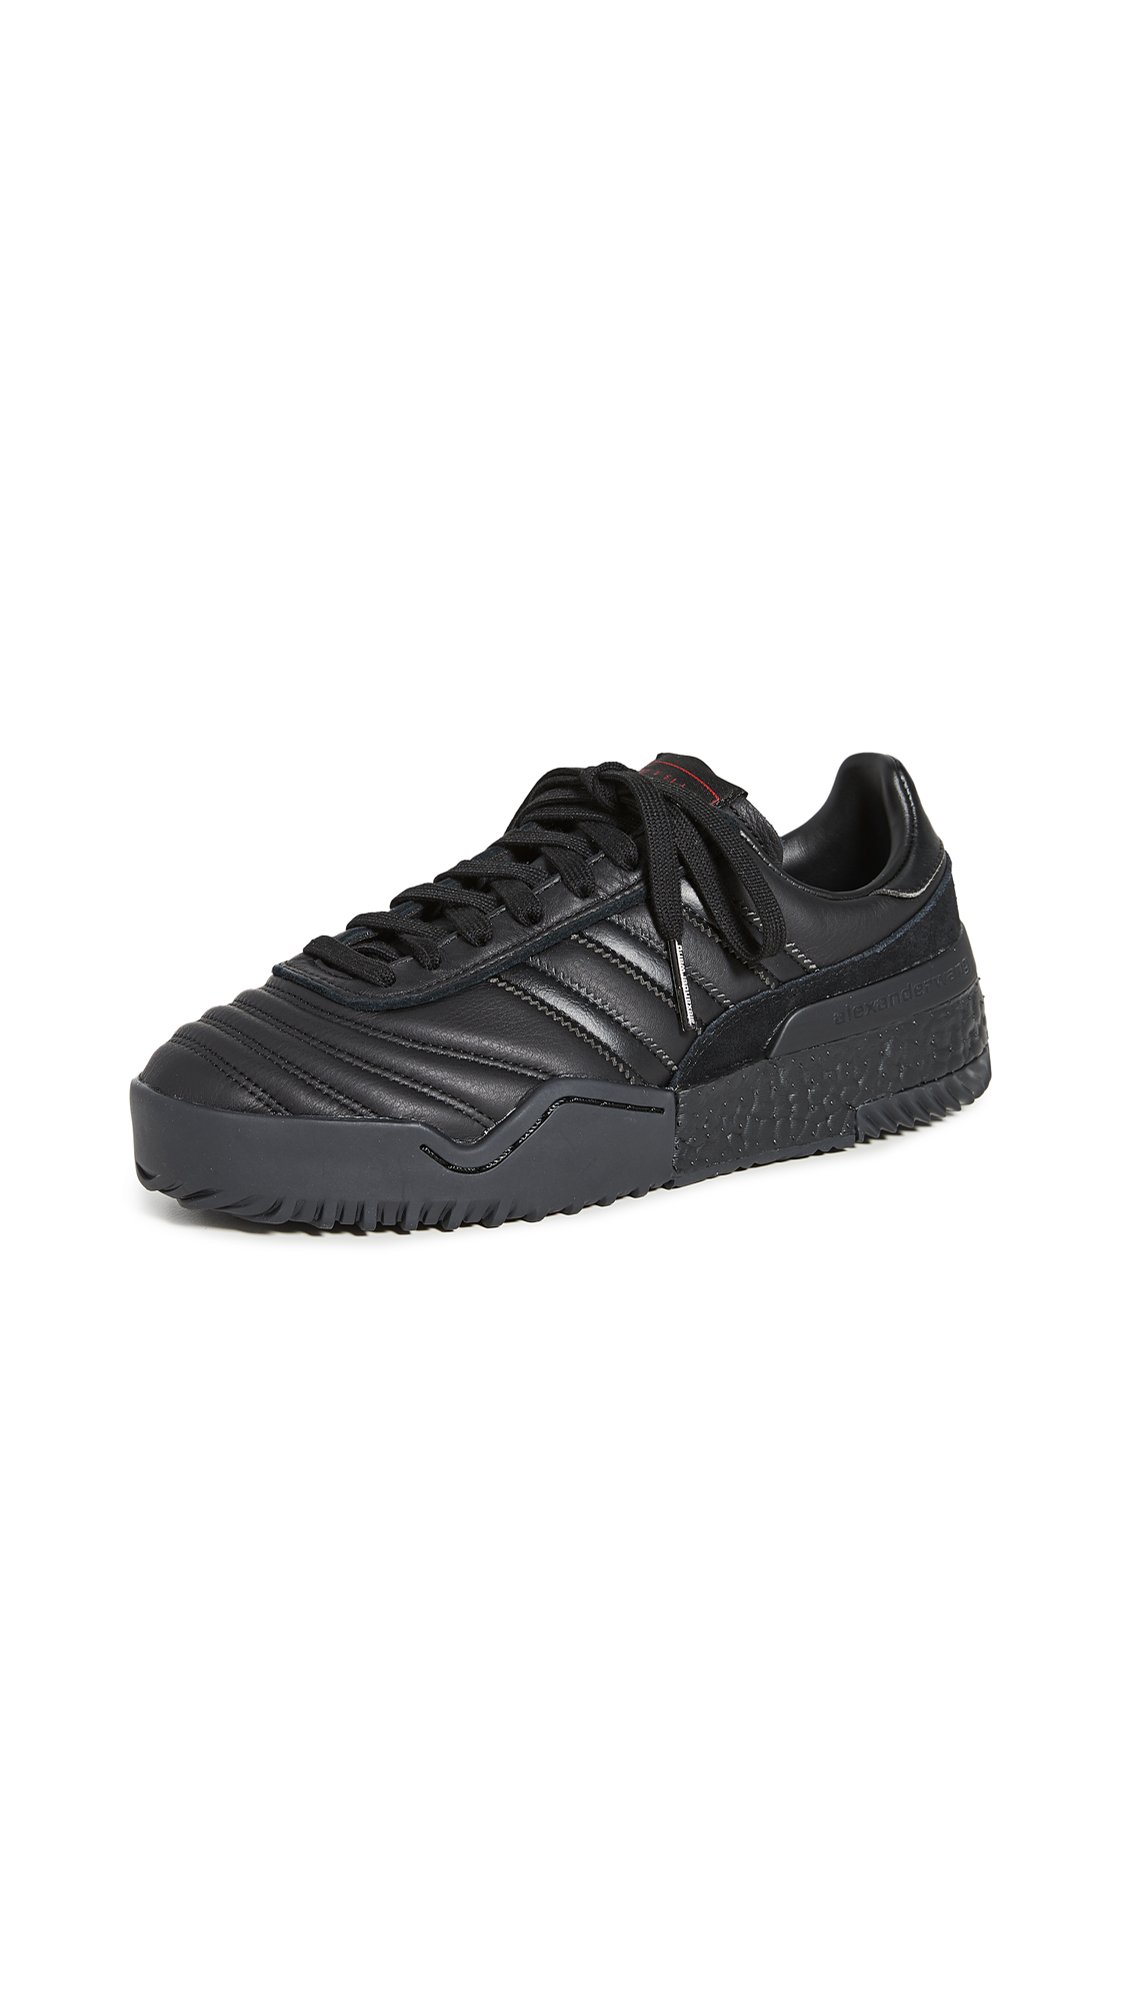 adidas Originals by Alexander Wang AW Bball Soccer Sneakers - 60% Off Sale